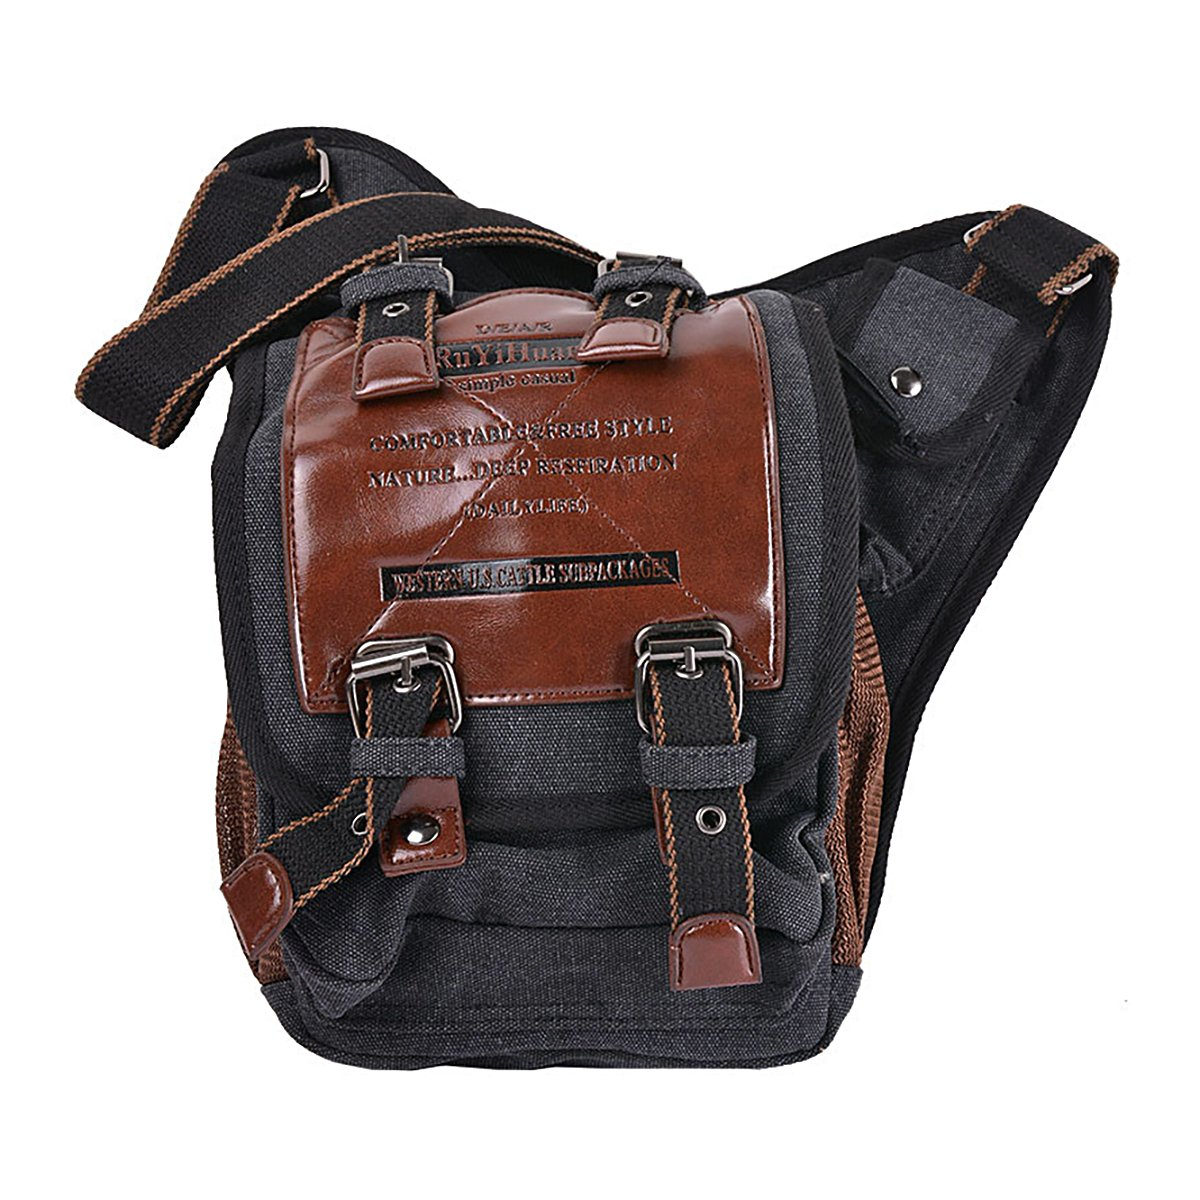 fd9ada1f6d41 Mens Boys Vintage Canvas Shoulder Military Messenger Bag Sling School Bags  - Unisex Sports Shoulder Bag Fishing Tackle Bag Crossbody Messenger Sling  Bags